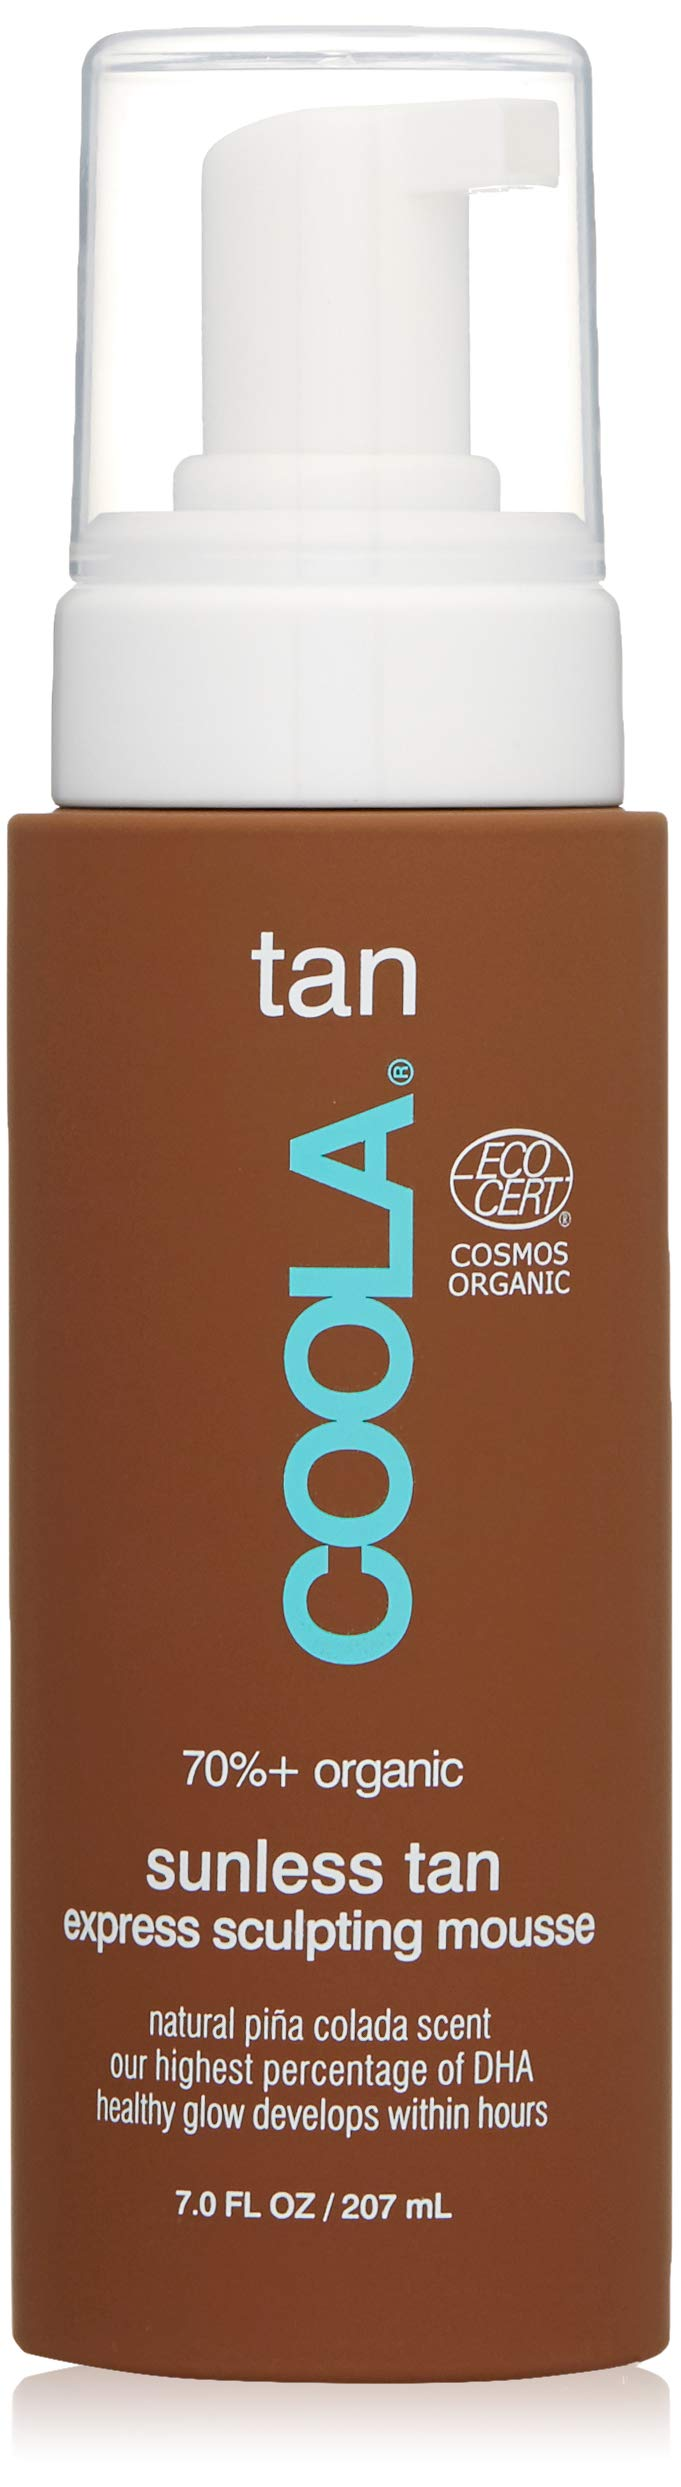 COOLA Organic Sunless Tan Express Body Mousse | Firming | Transfer-Free | Fast Drying | Pina Colada